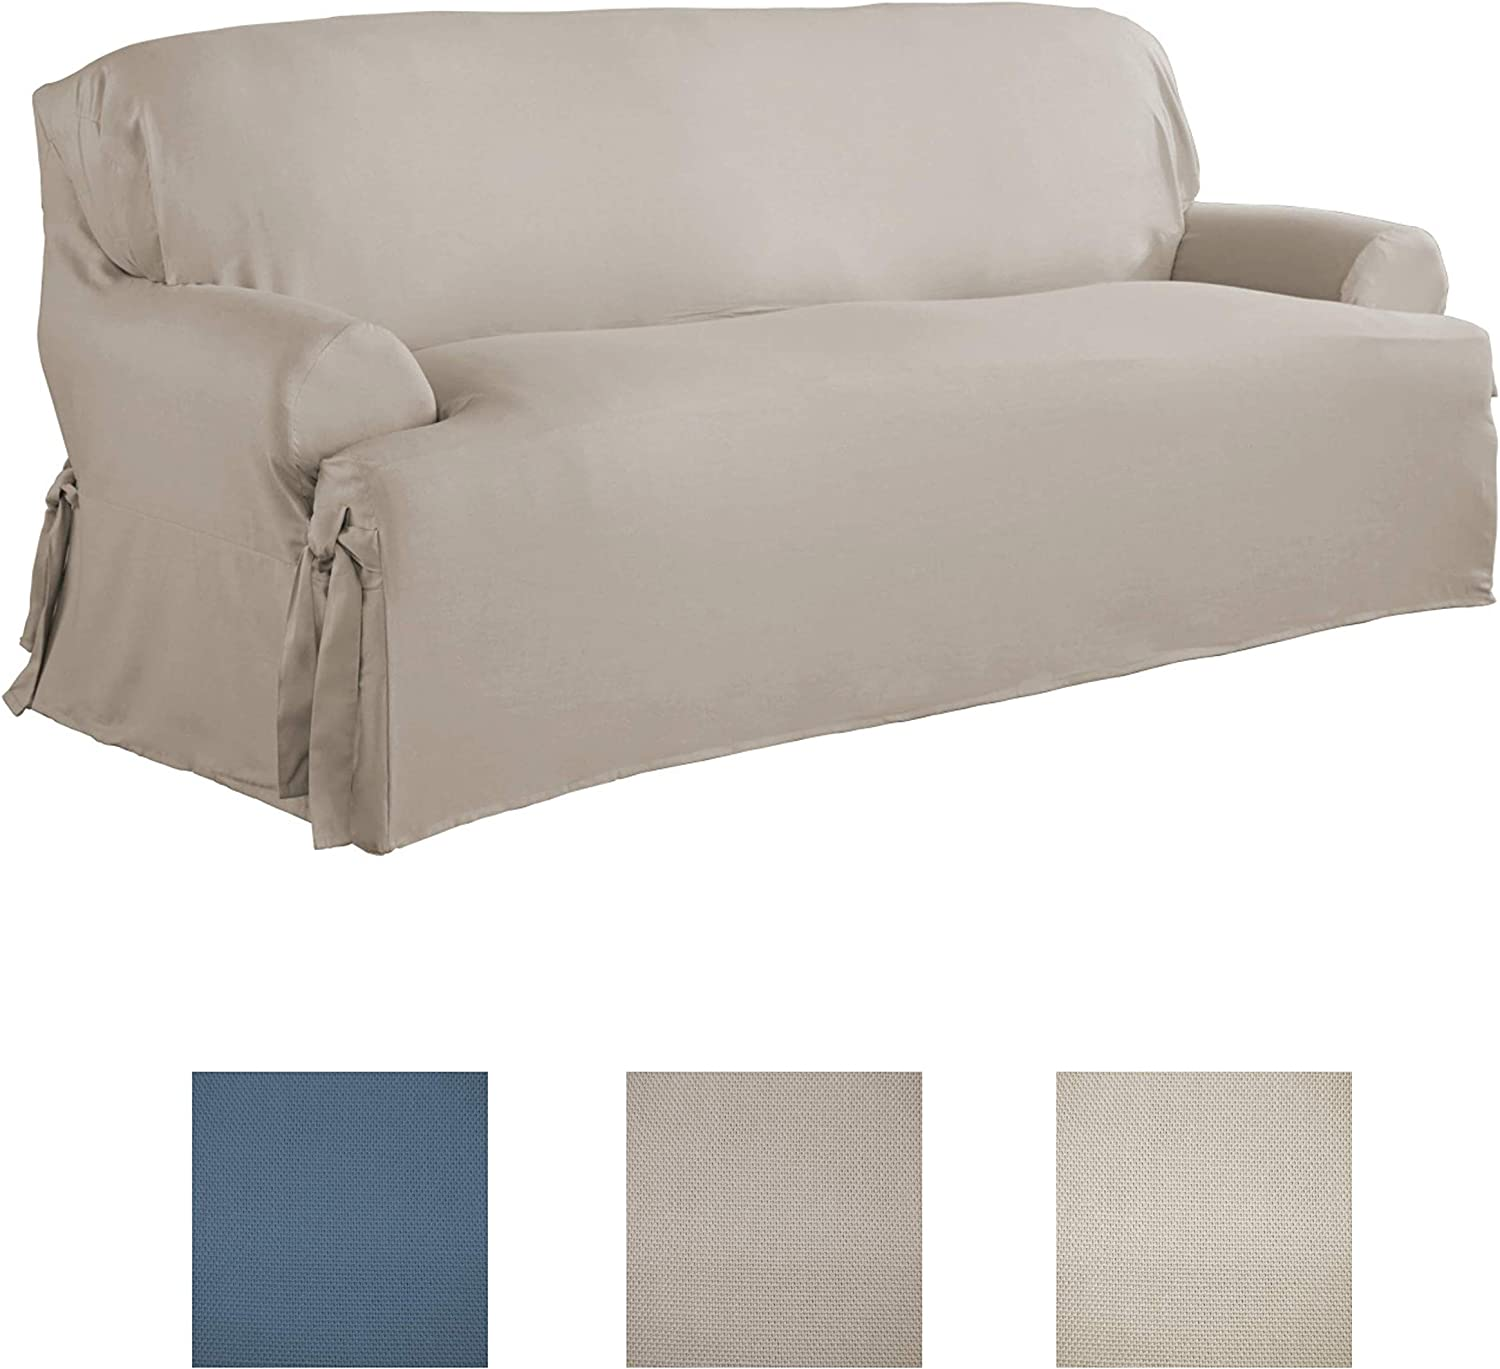 Serta   Relaxed Fit Durable Woven Linen Canvas Furniture Slipcover (T-Sofa, Khaki)